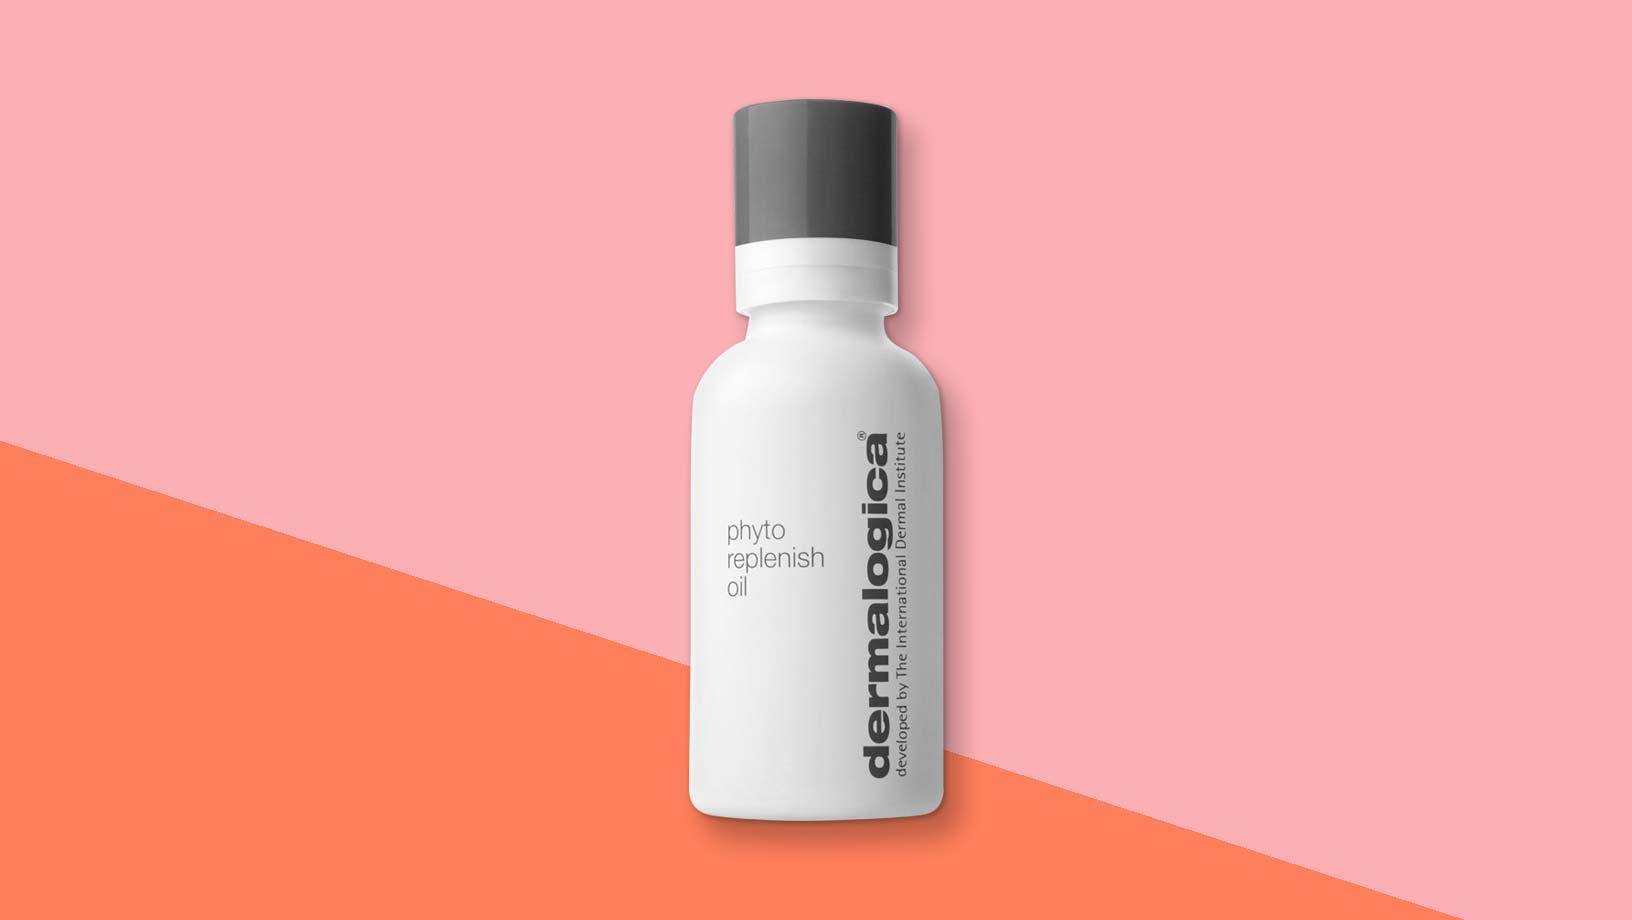 Dermalogica Phyto Replenish Oil standing on a pink and orange background